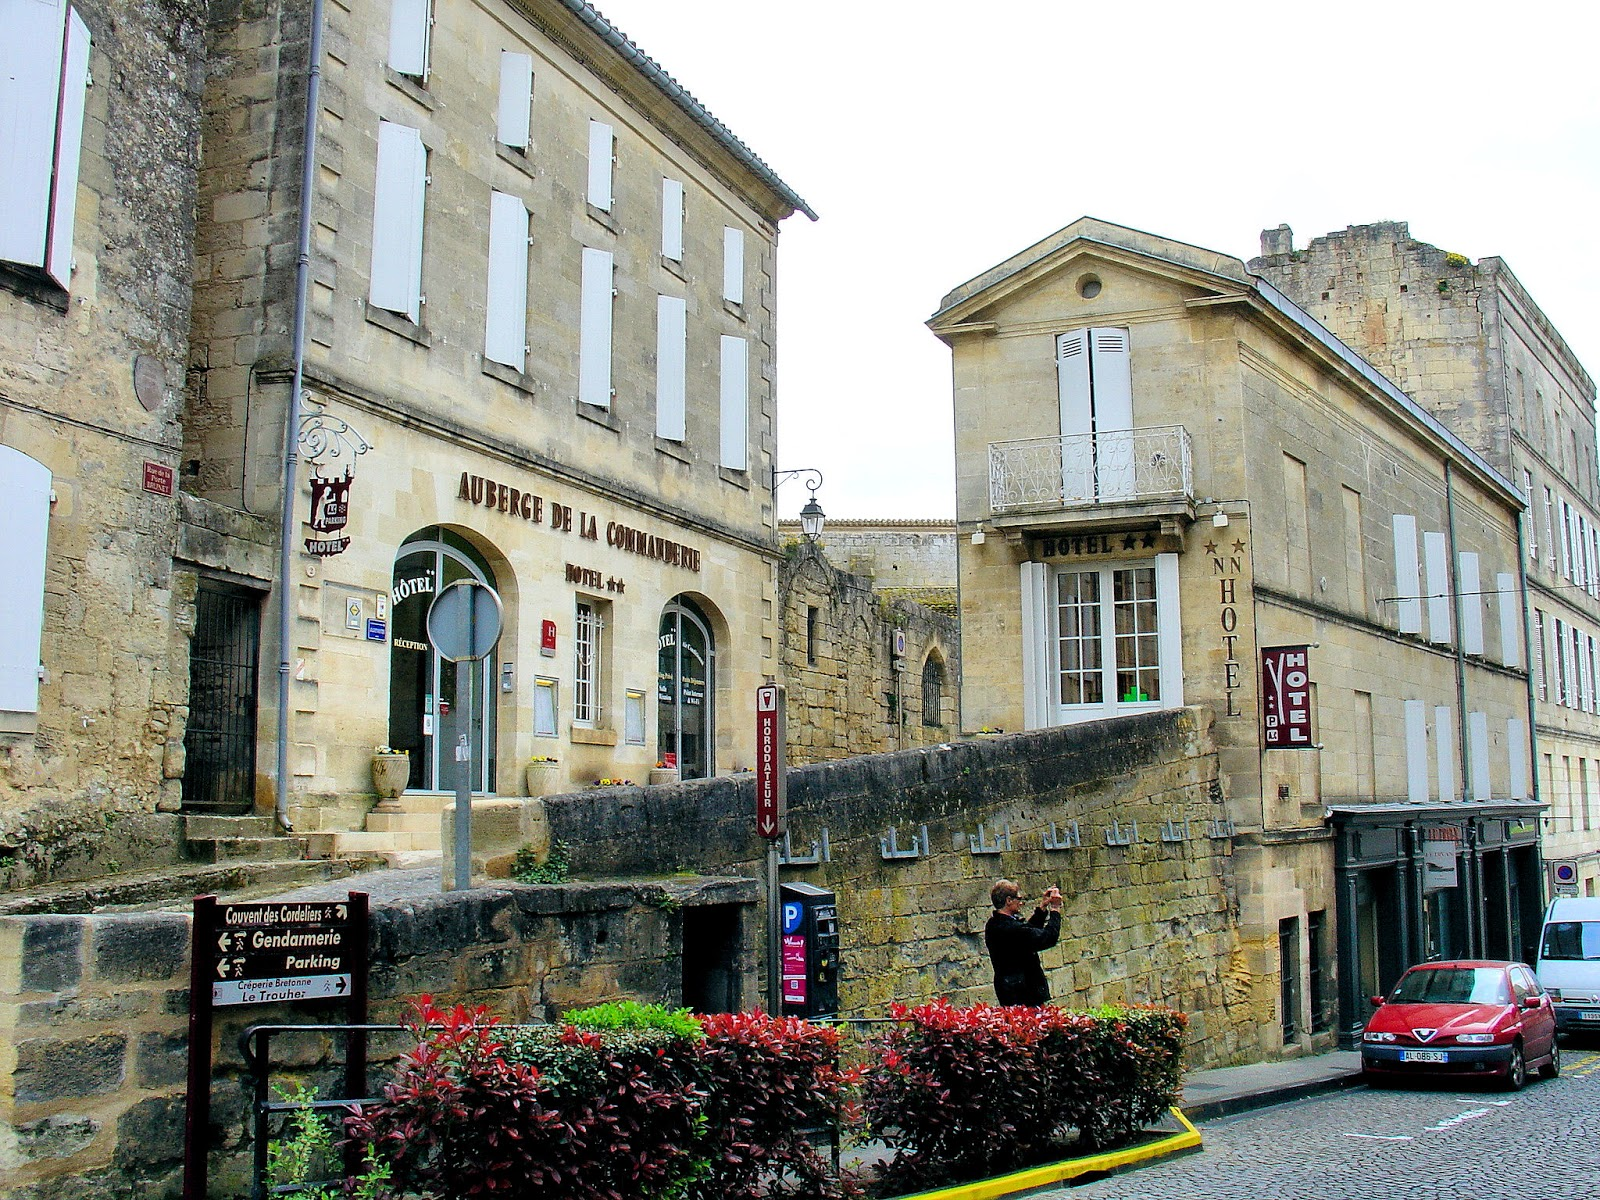 Quaint hotels line the narrow lanes of Saint-Emilion.